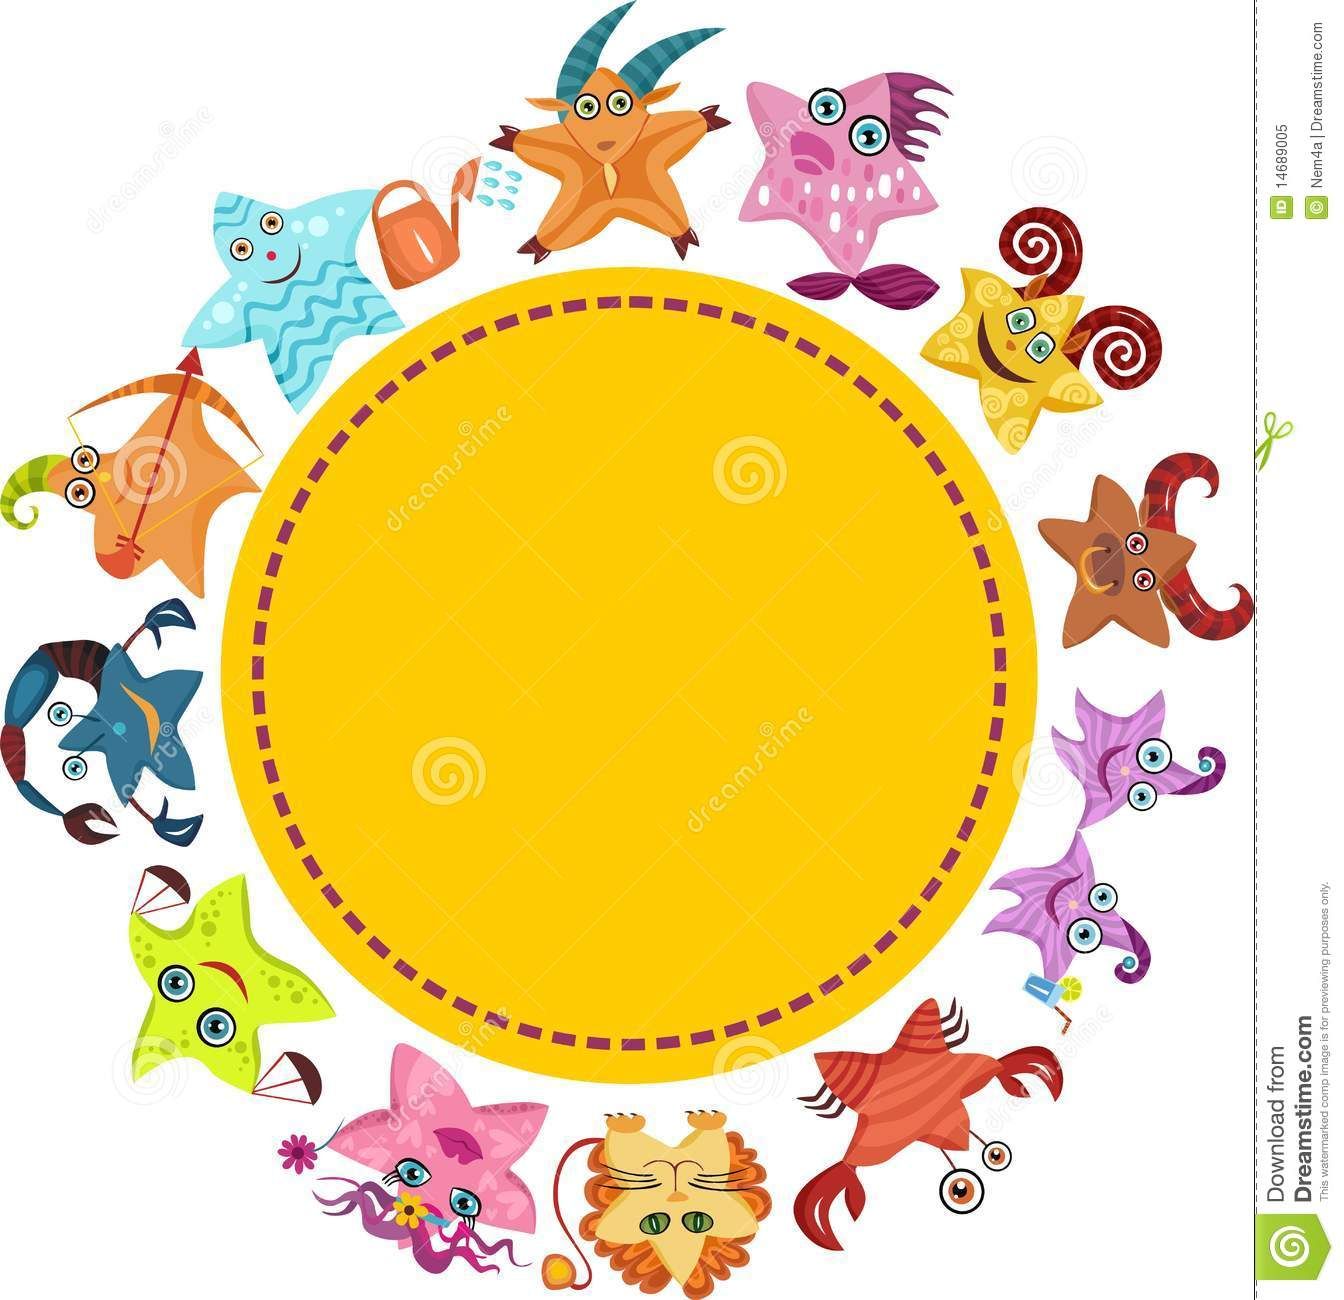 Download Vector signs of zodiac stock vector. Illustration of business - 14689005